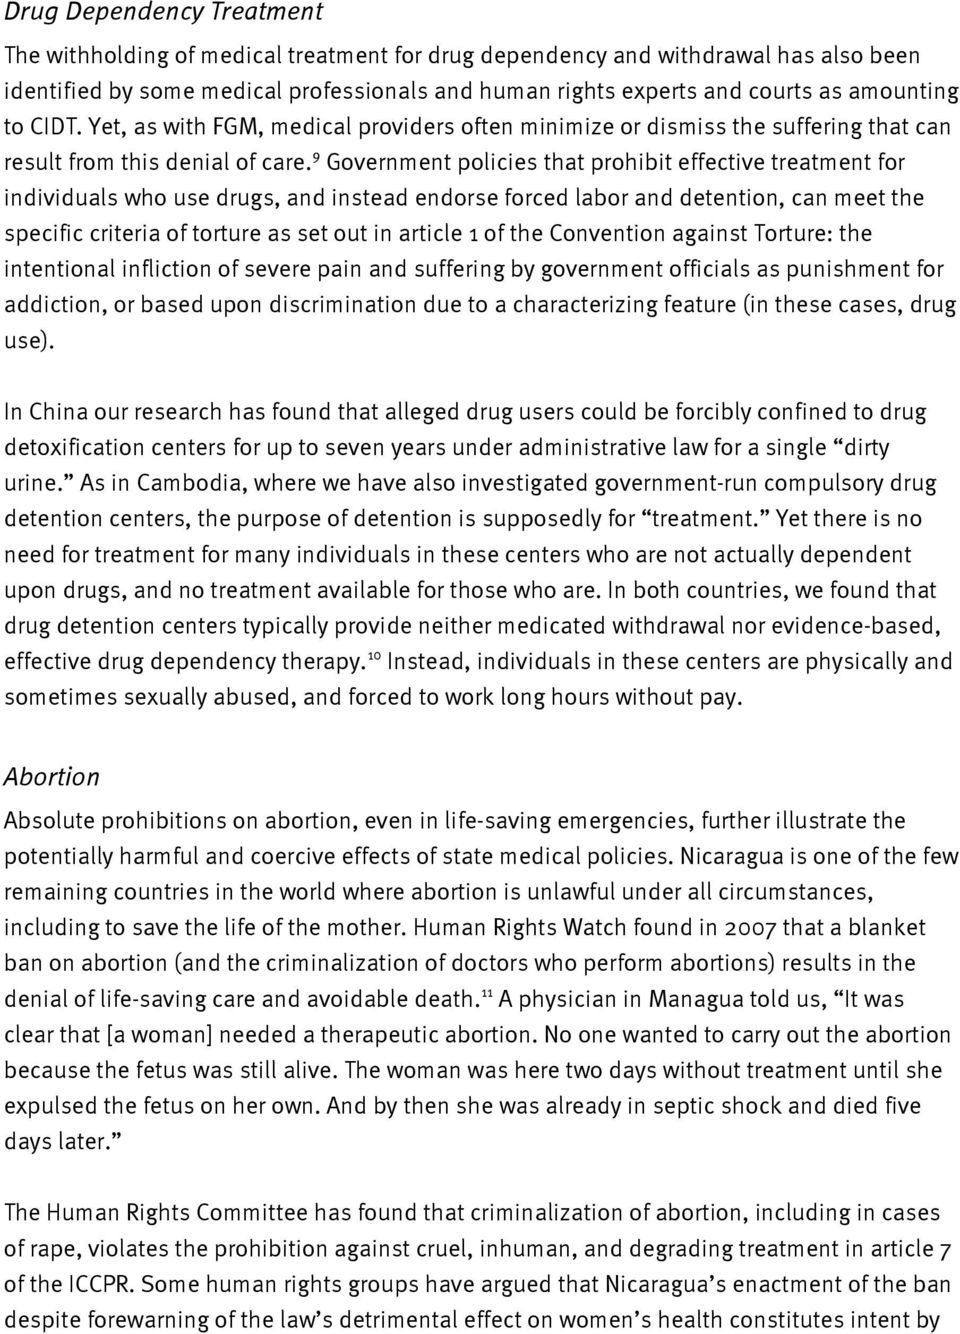 9 Government policies that prohibit effective treatment for individuals who use drugs, and instead endorse forced labor and detention, can meet the specific criteria of torture as set out in article